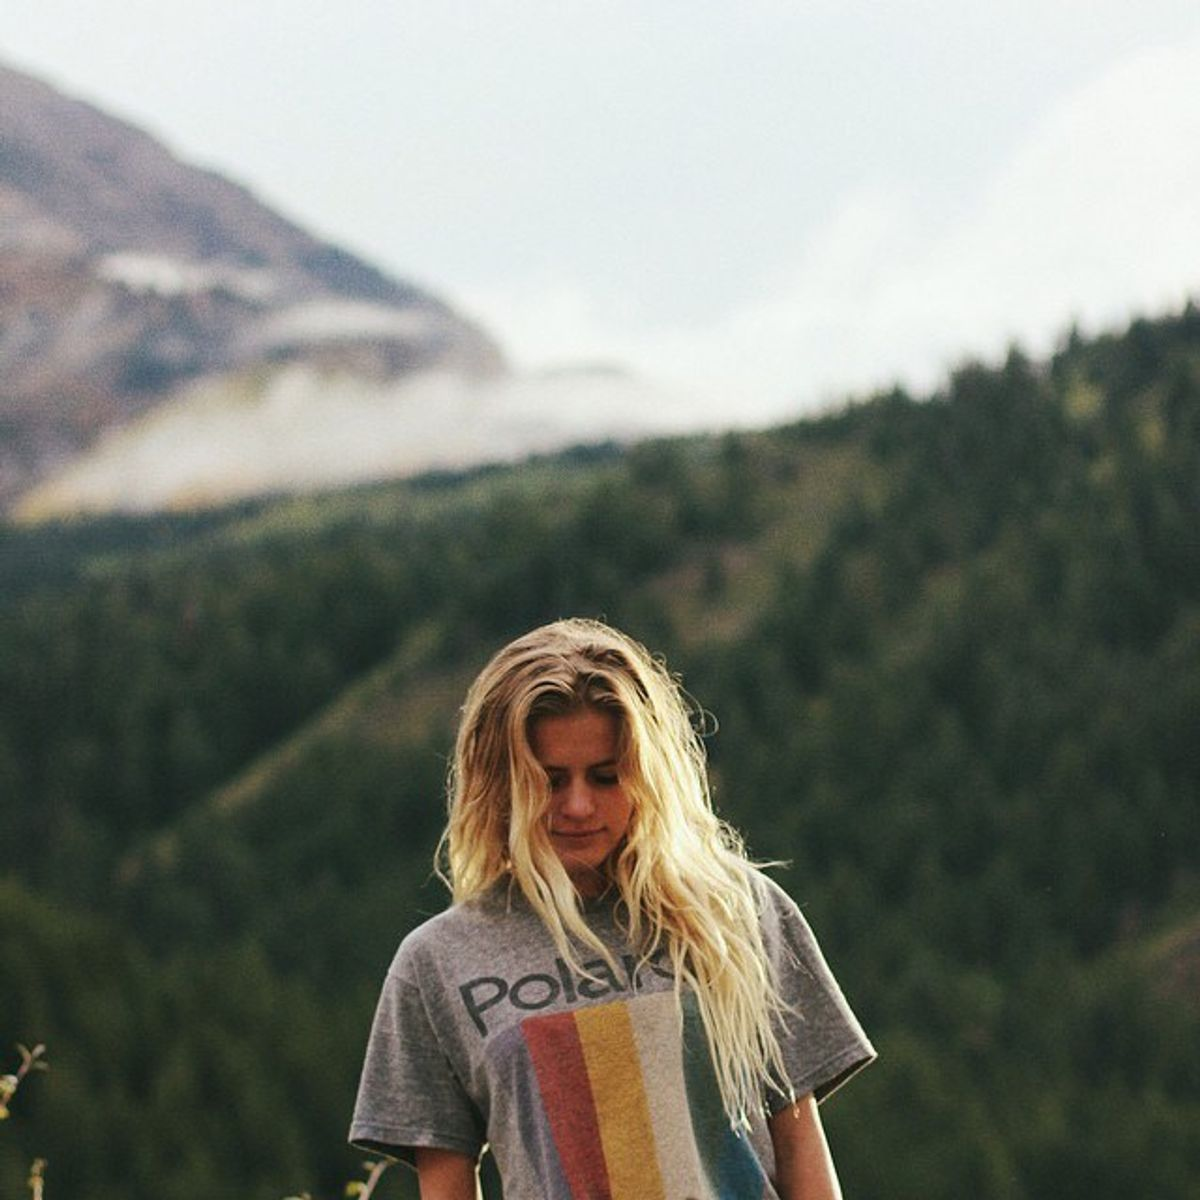 6 Judgements About The 'Nice Girl' That Need To Stop